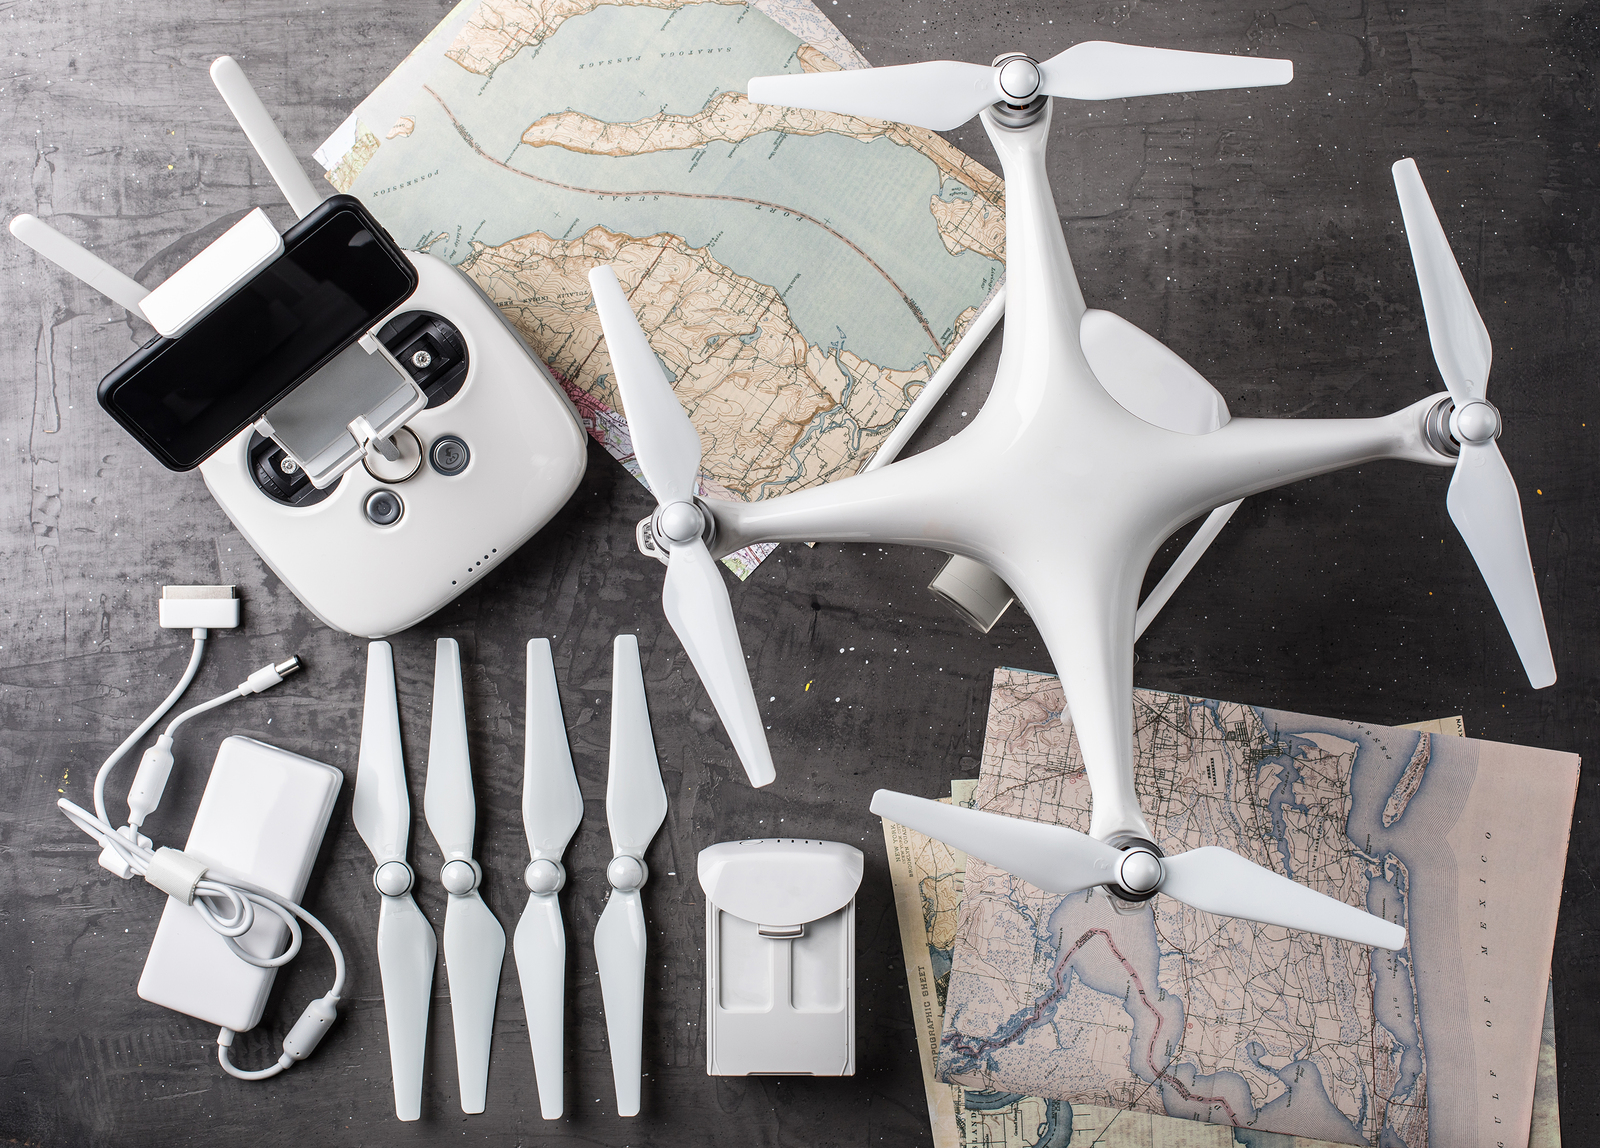 drones, a drone resting on top of a map, extra parts and controller on table